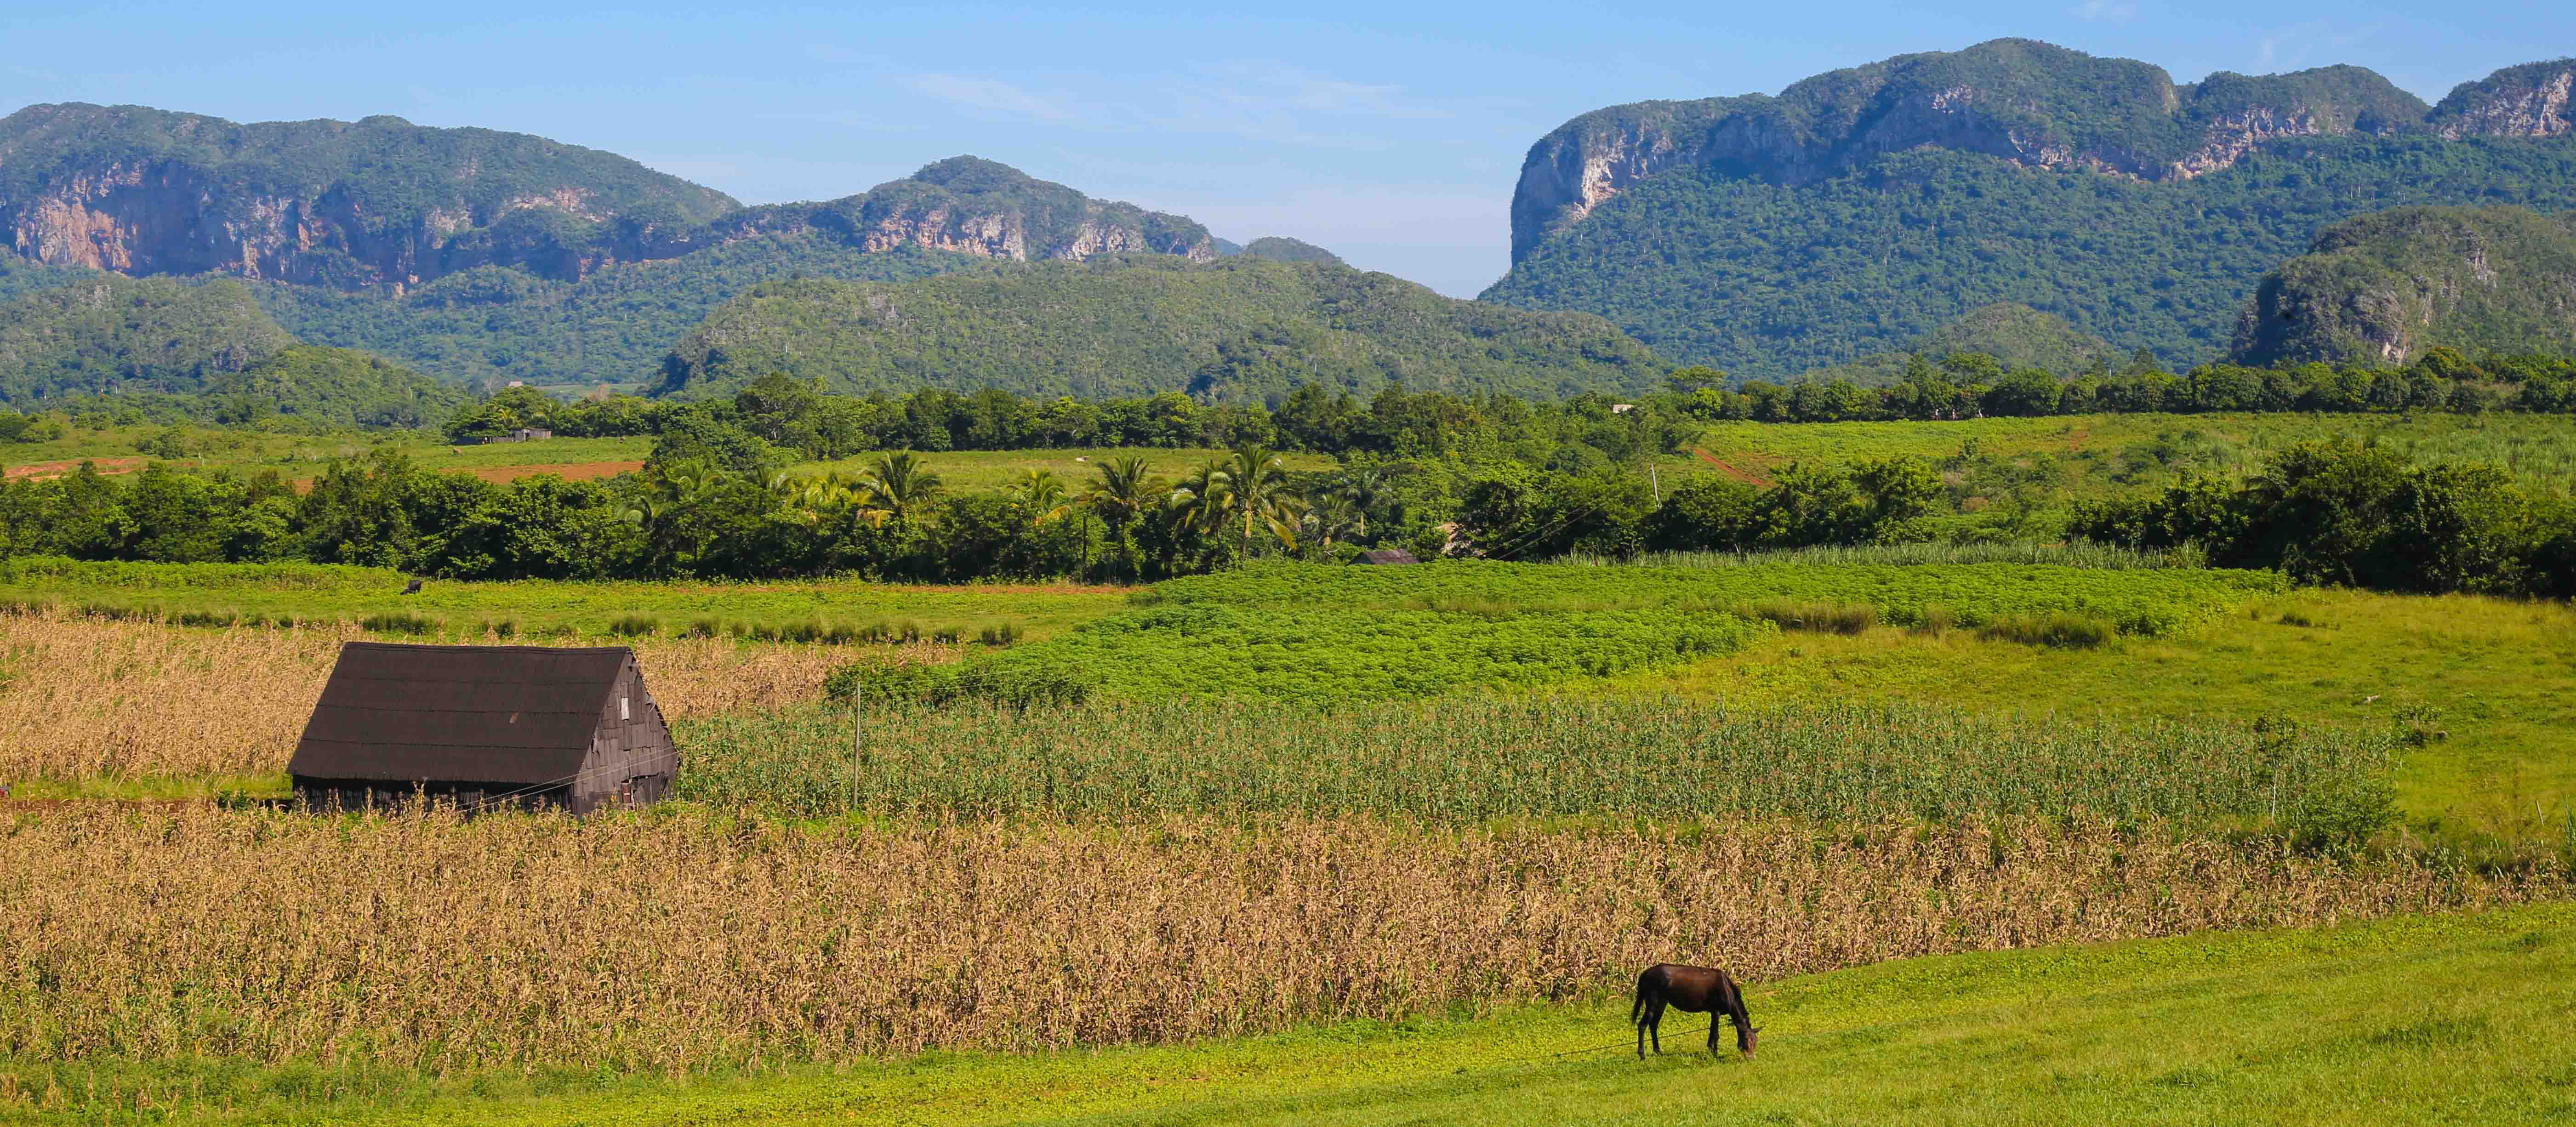 Landscape of Vinales and tobacco plantation in Cuba